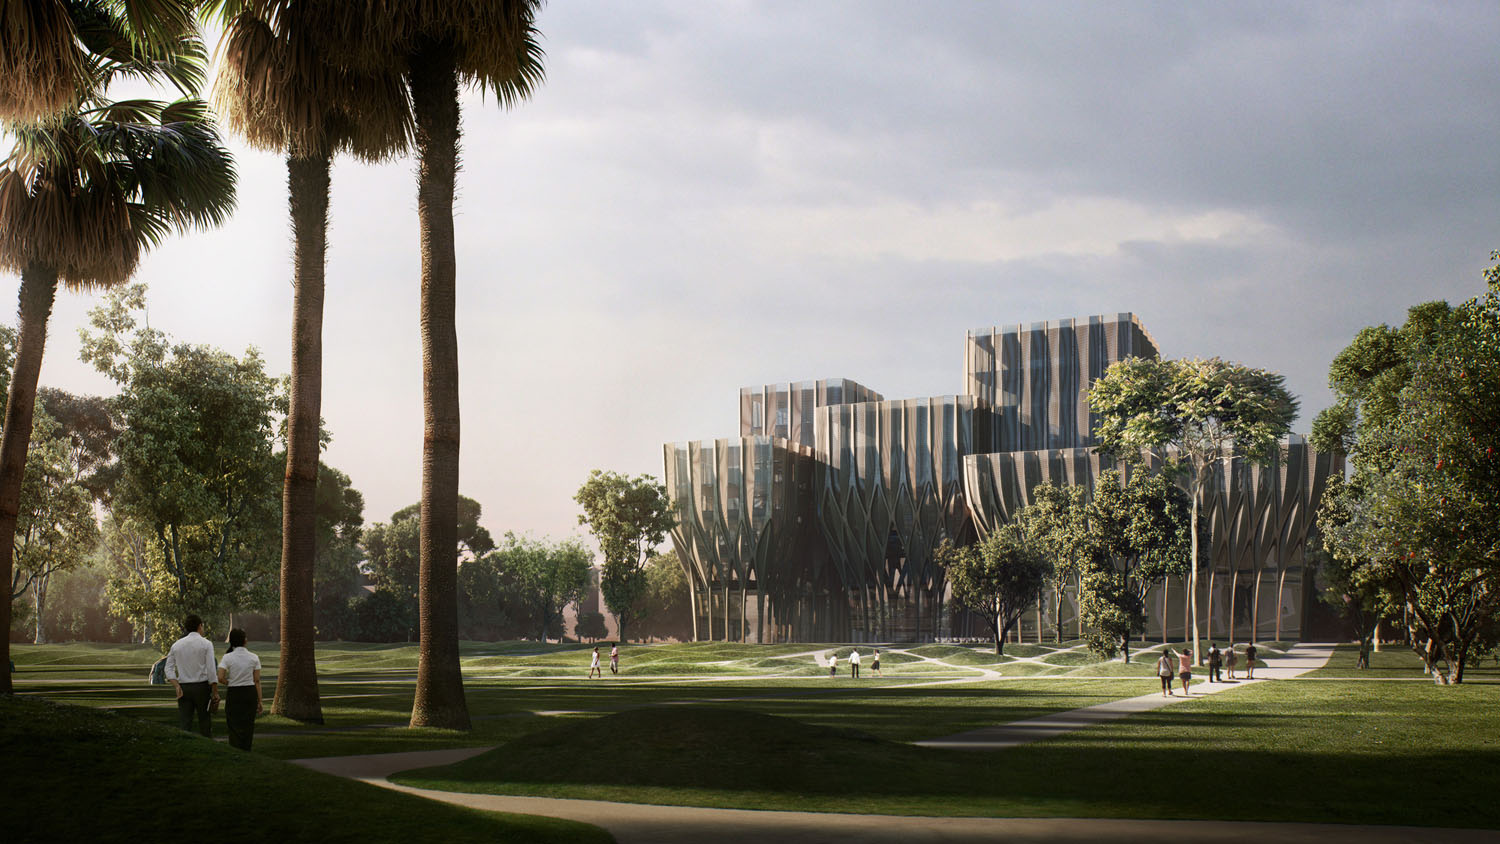 mm_Sleuk Rith Institute in Cambodia design by Zaha Hadid Architects_02